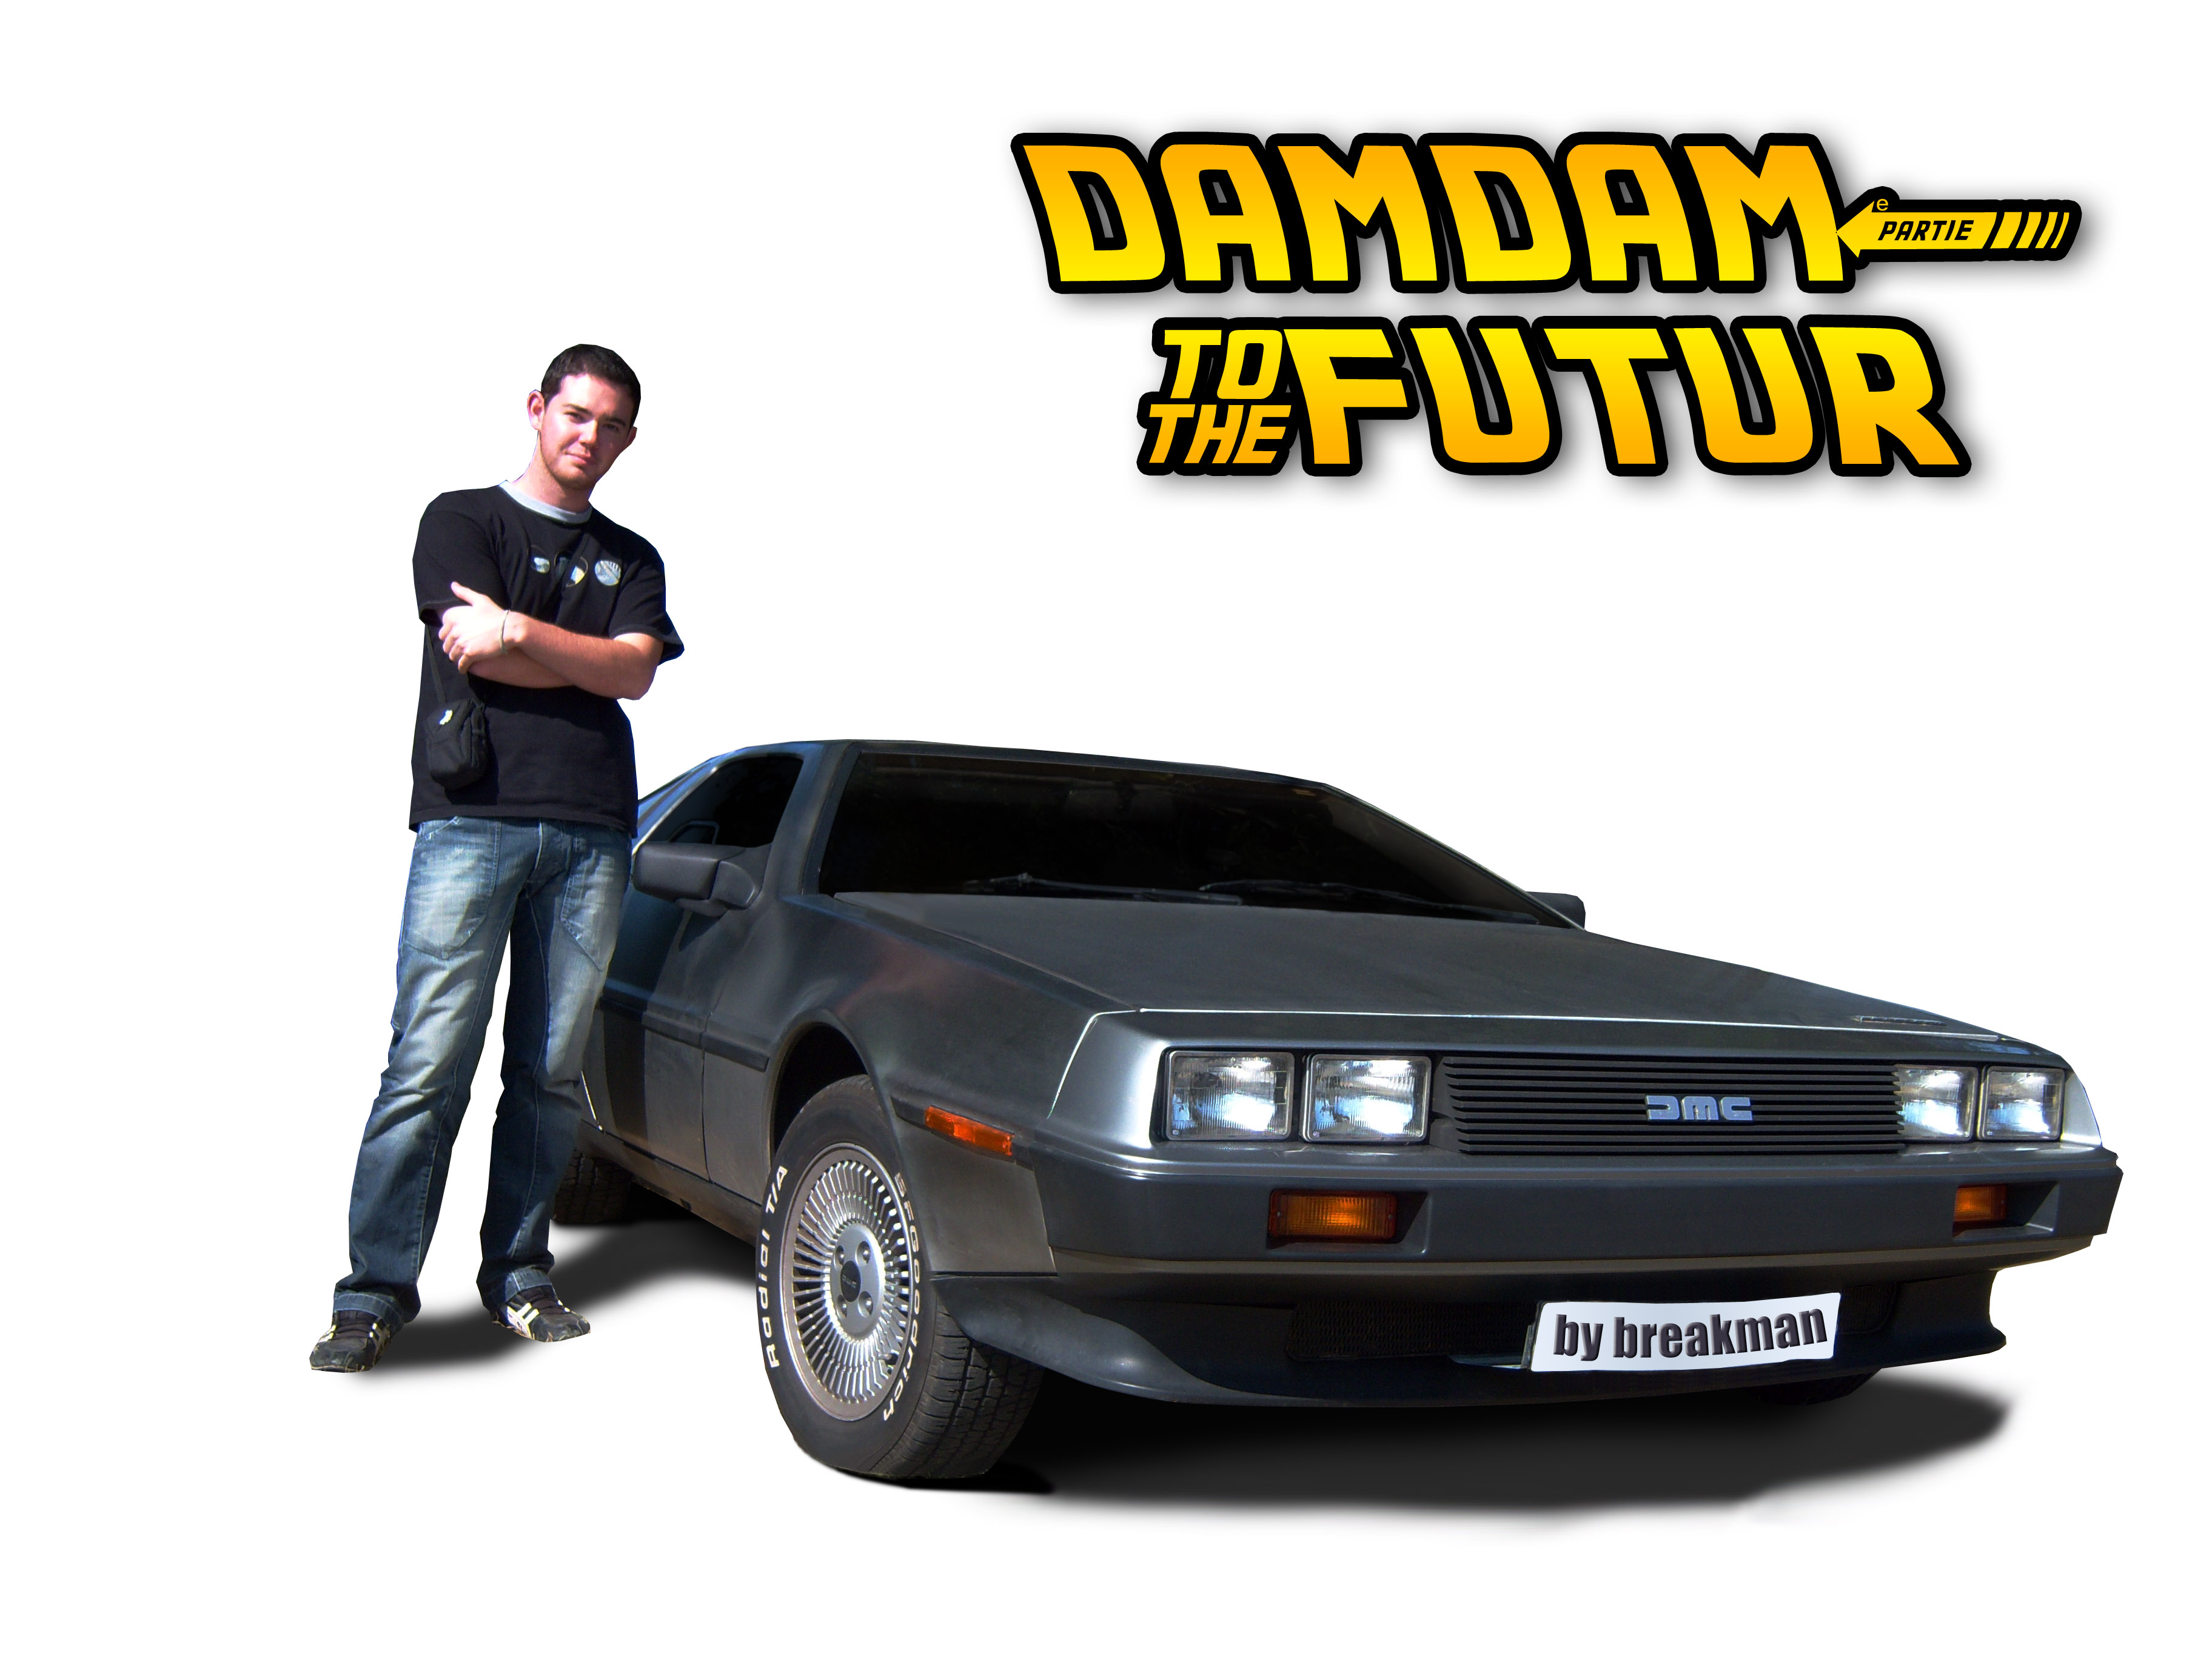 Damien-back to the future